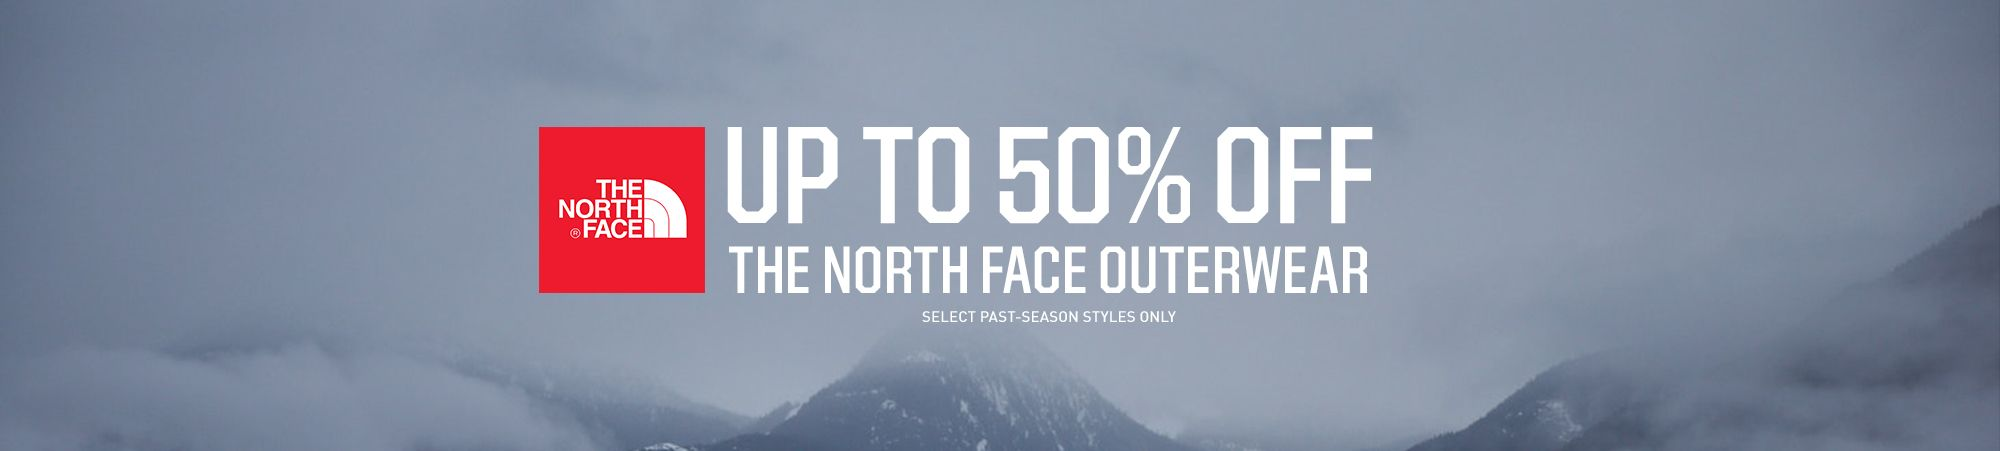 Up to 50% off The North Face Outerwear - Shop Now